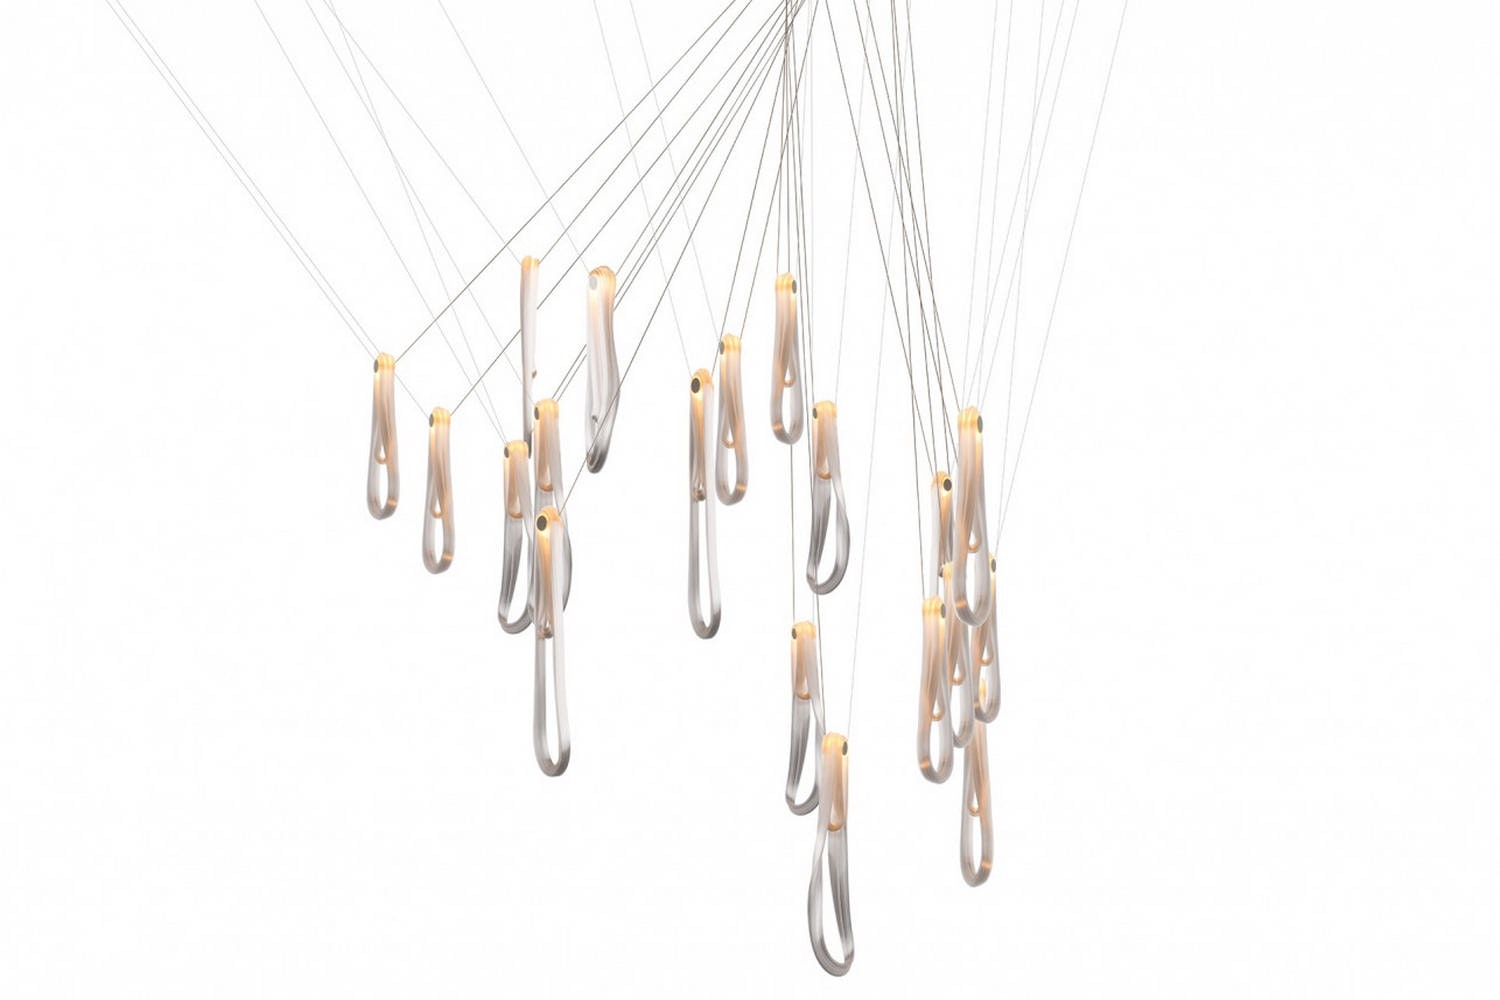 87.19 Suspension Lamp by Omer Arbel for Bocci